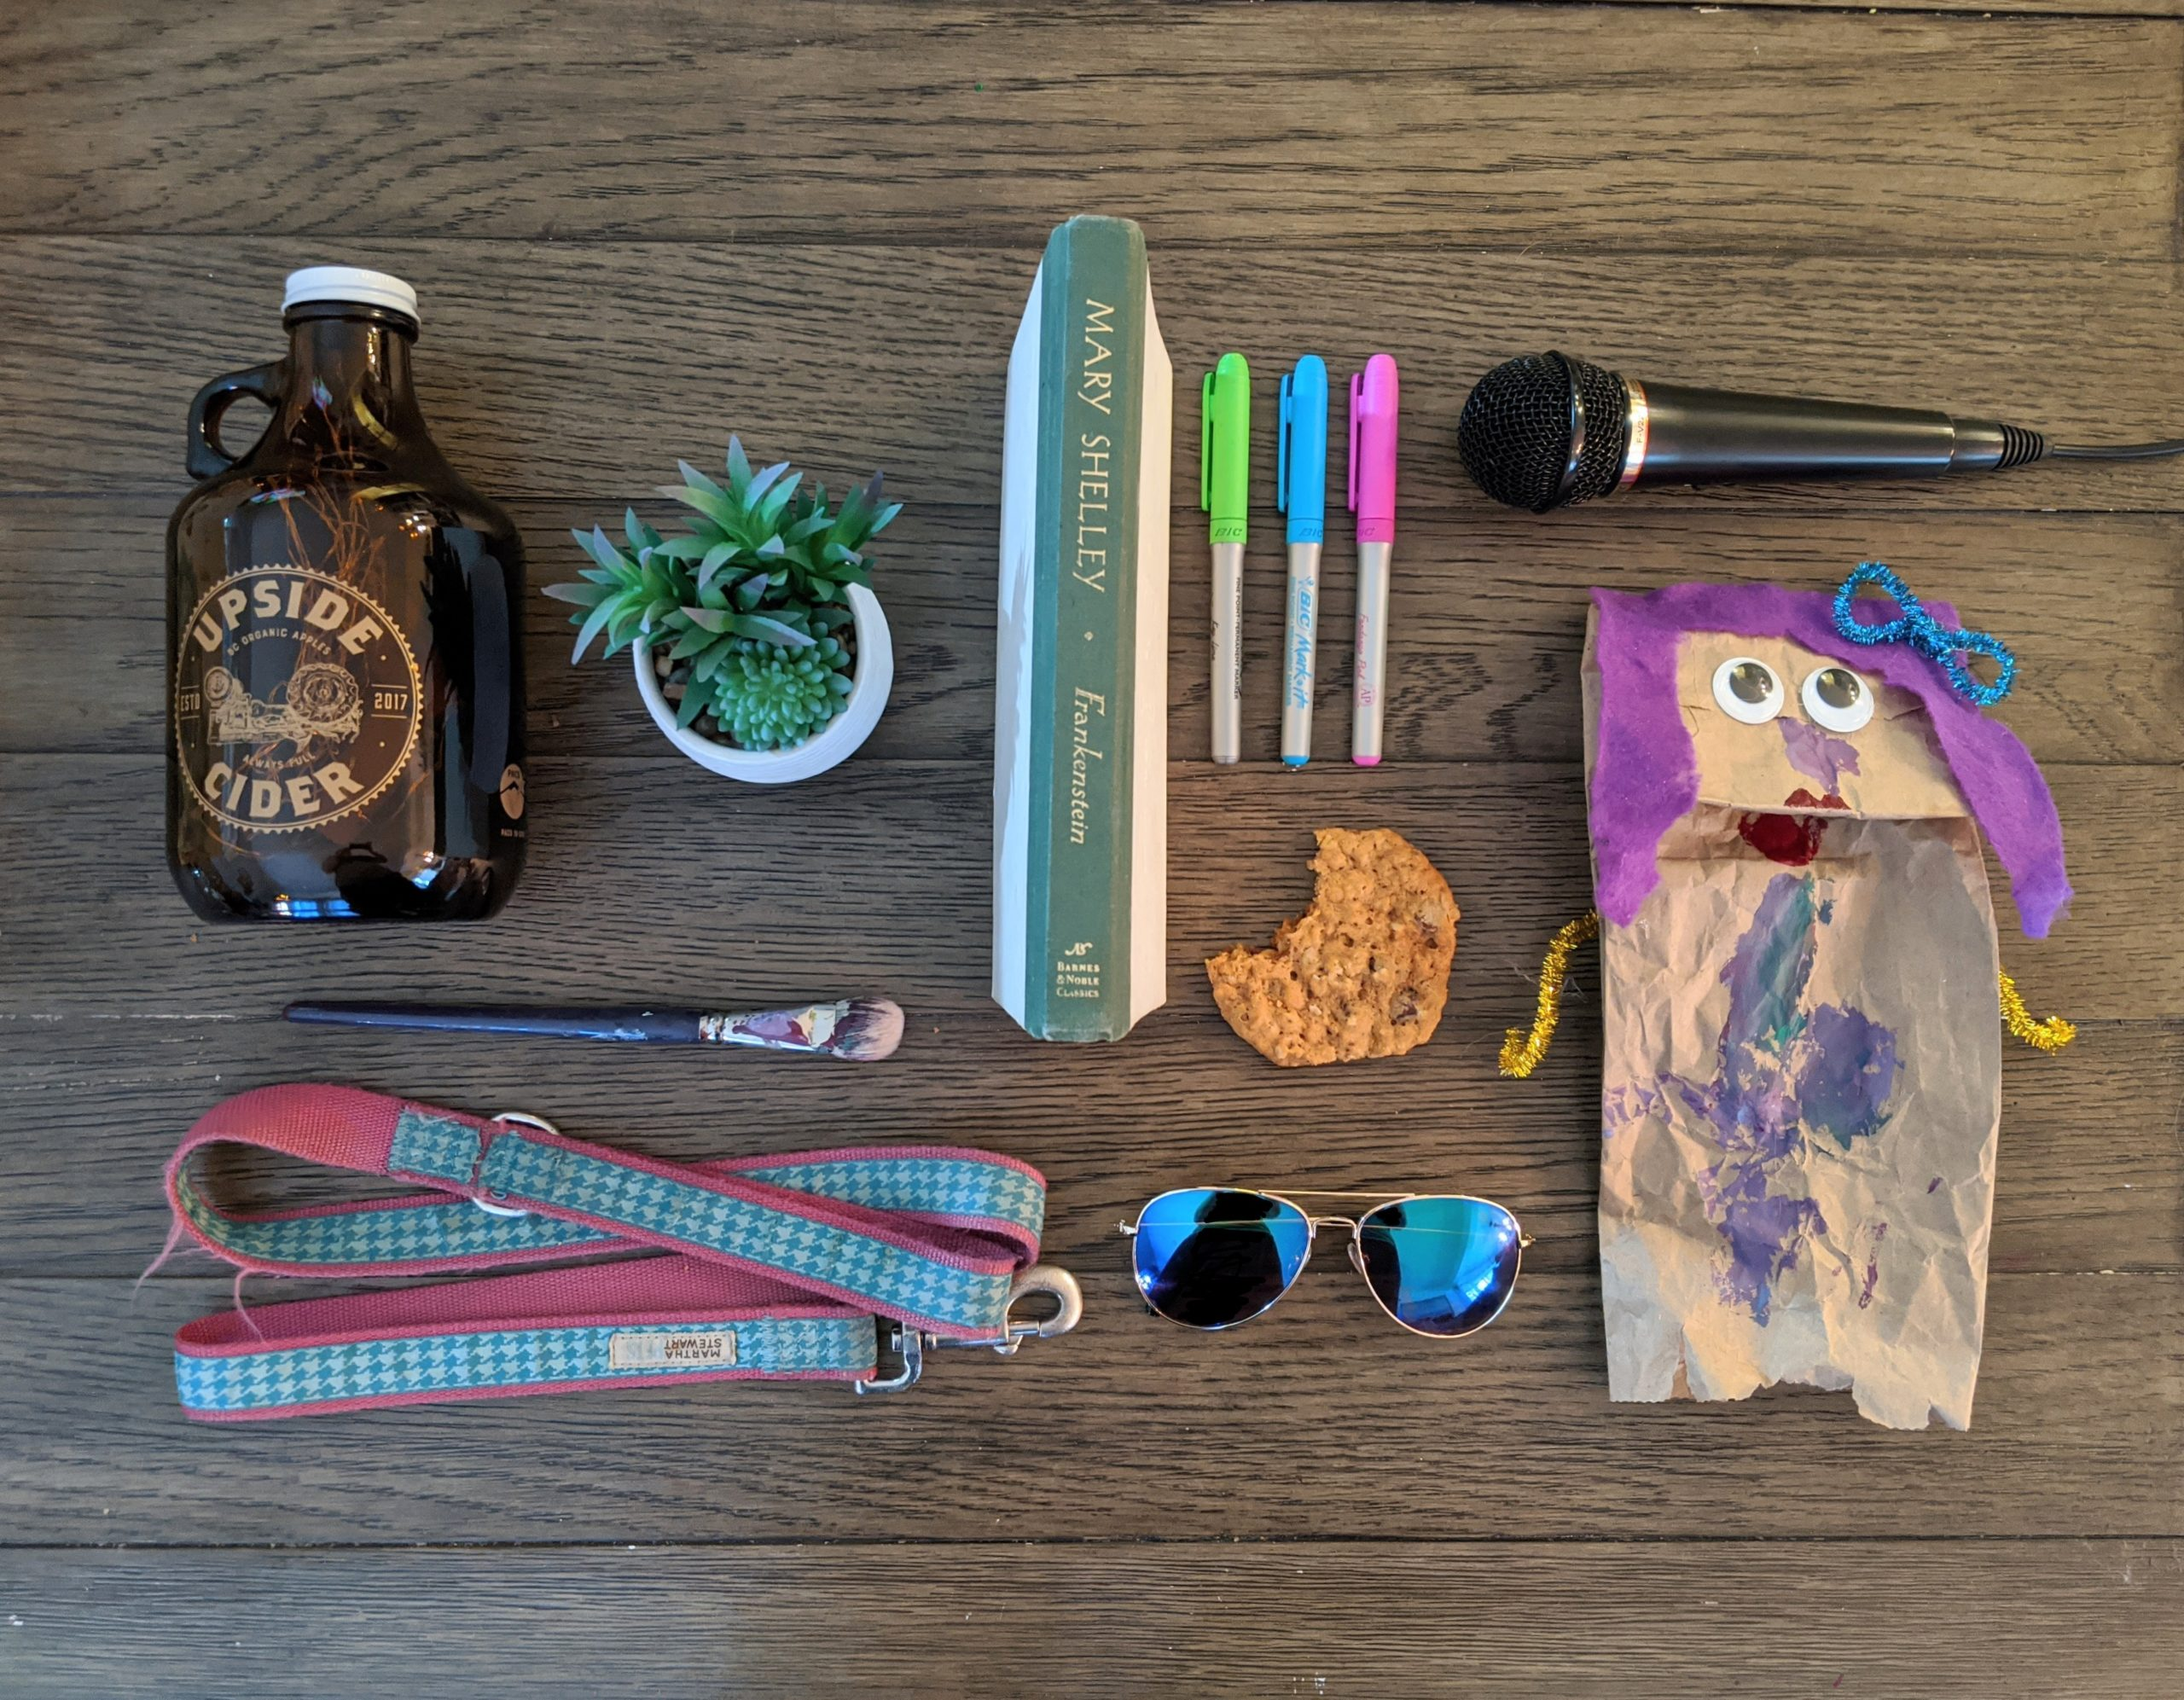 Different objects, such as a paintbrush, novel, microphone, dog leash, plant, sunglasses, and cookie, that reflect who Christine Weber is and her interests